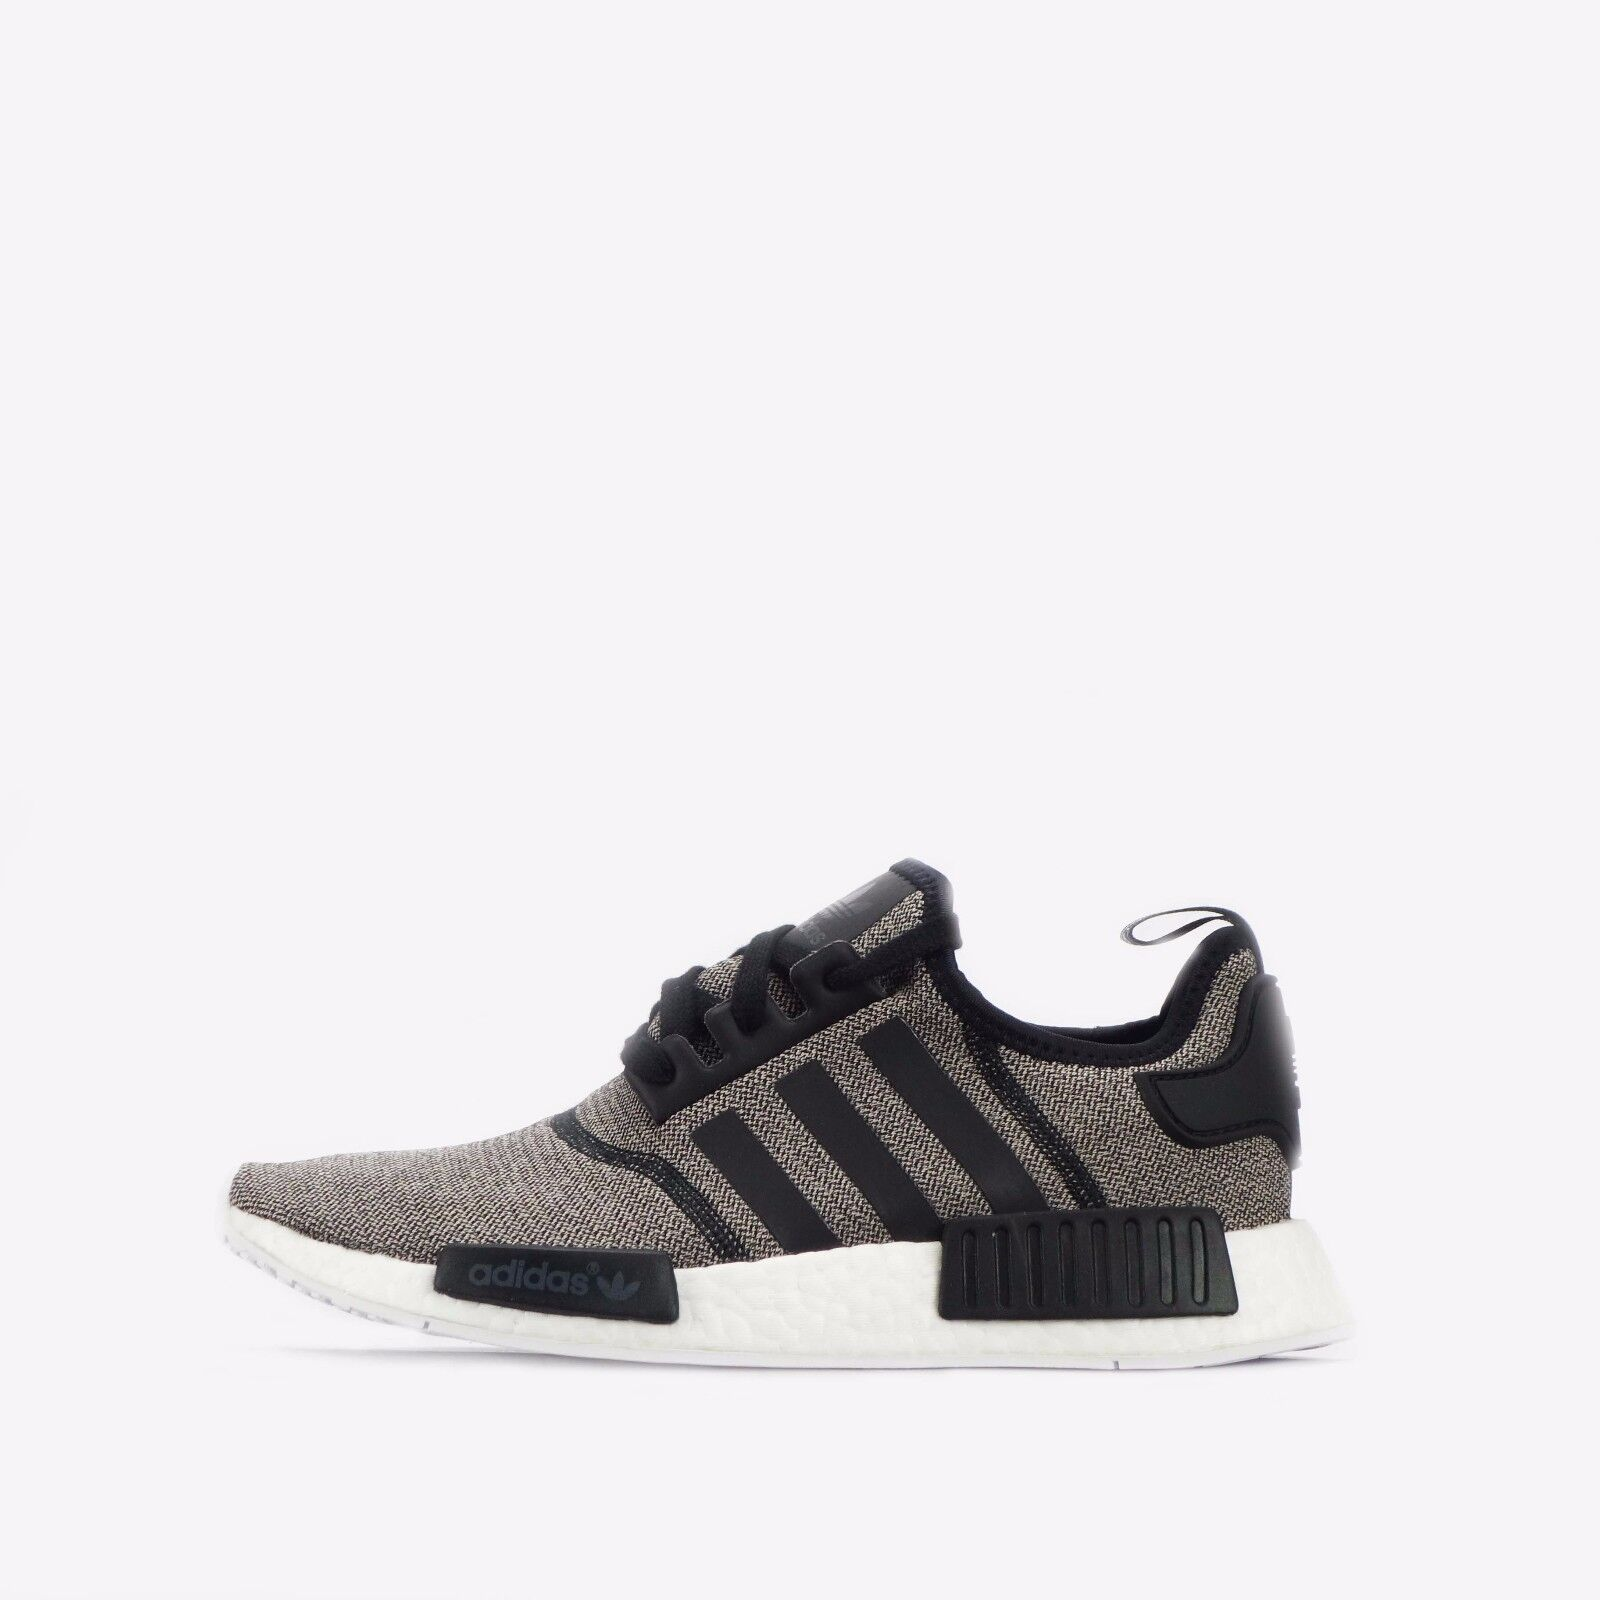 innovative design 4d273 55b4e adidas NMD_R1 Knit Women's Shoes in Core Black/White